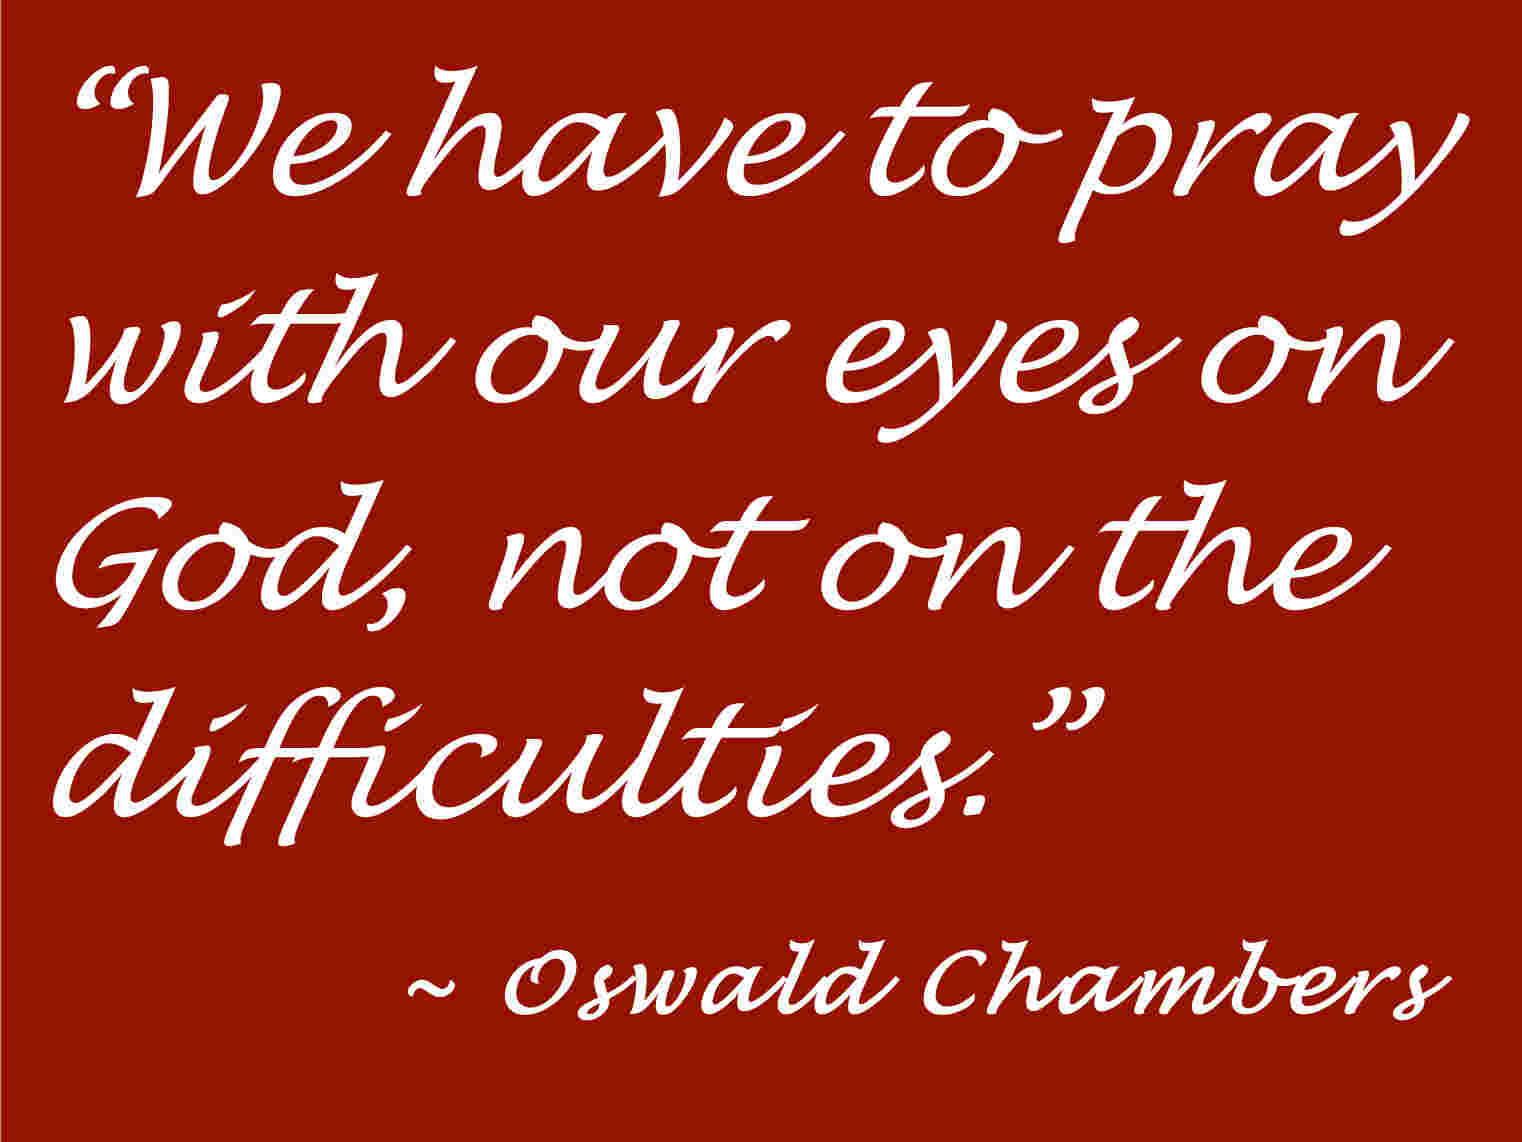 Prayer quotes pictures and prayer quotes images 7 we have to pray with our eyes on god not on the difficulties thecheapjerseys Gallery